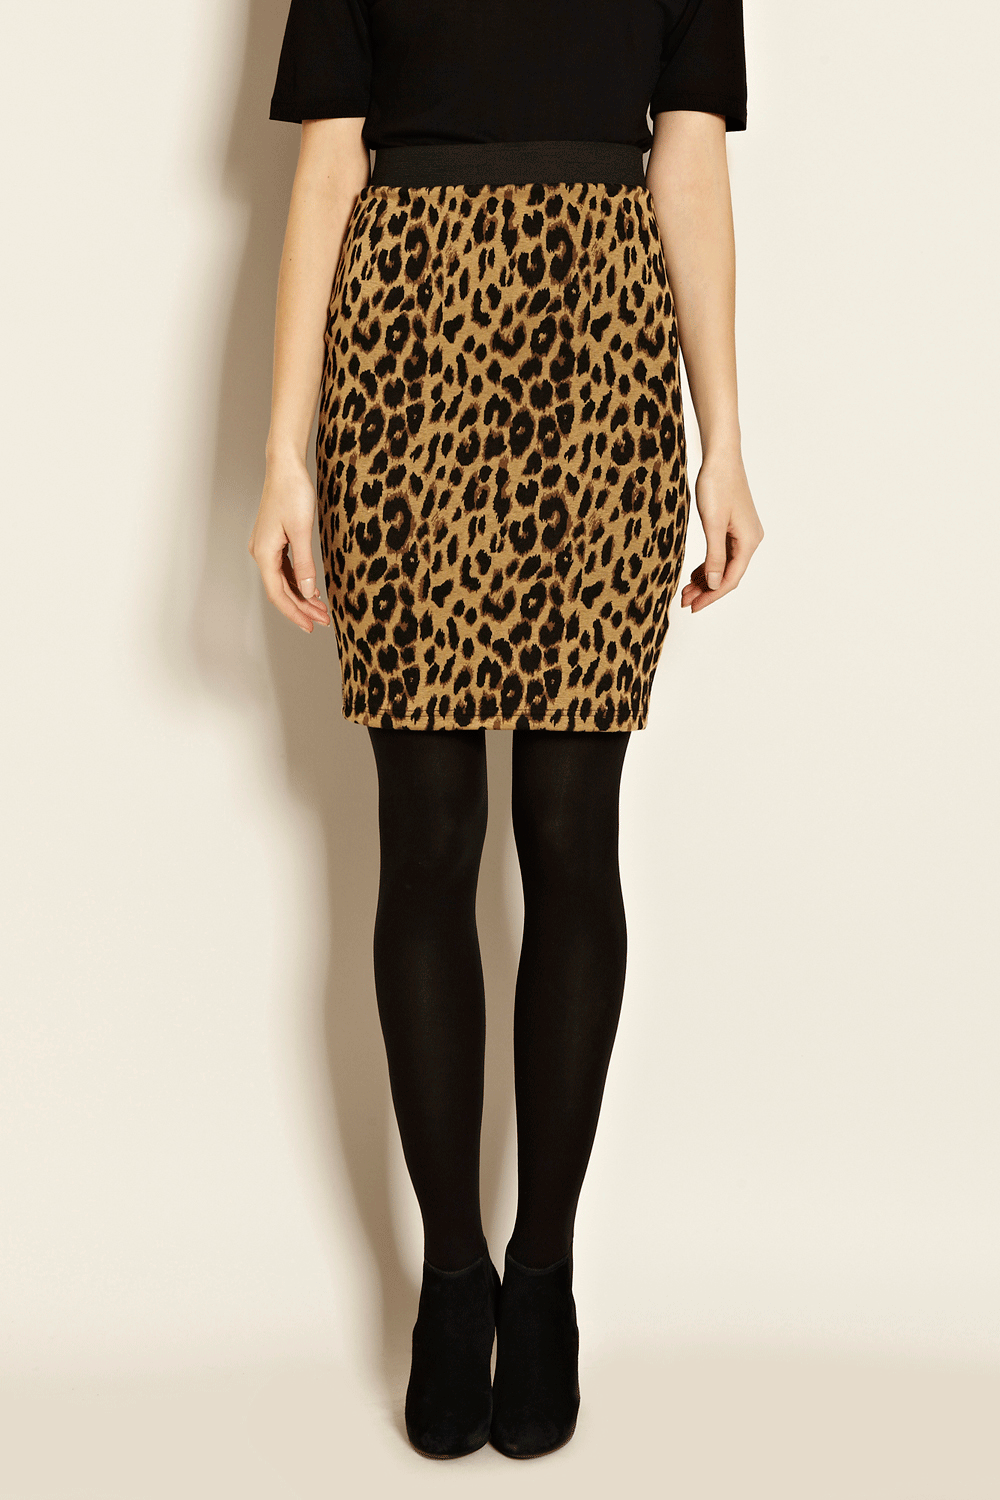 Warehouse New Year's Eve |  MULTI ANIMAL JACQUARD PENCIL SKIRT | Fashion Clothing | Warehouse Fashions